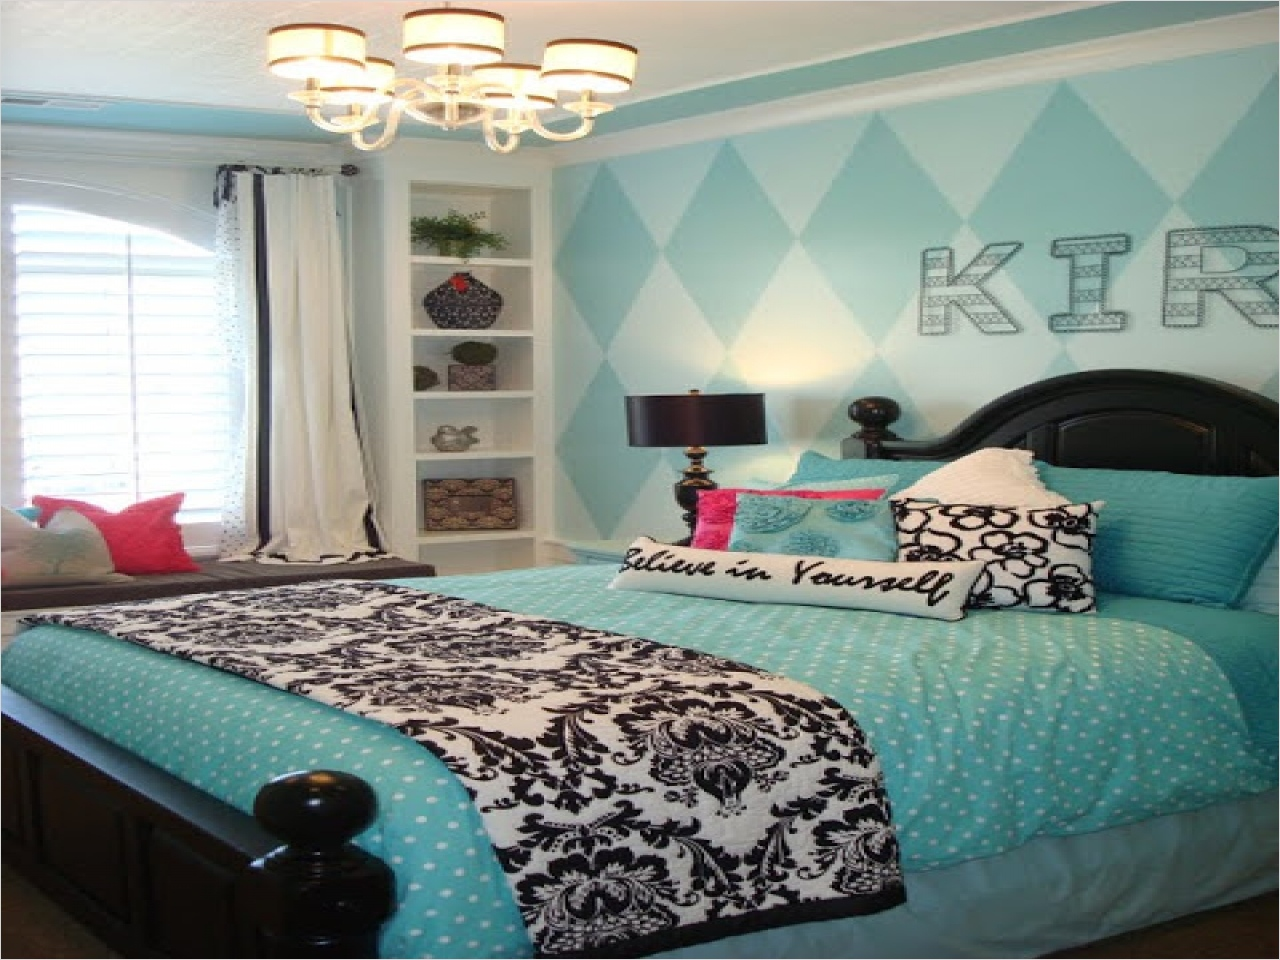 41 Amazing Dream Bedrooms for Teenage Girls 27 Tiffany Blue Bedroom Ideas Dream Bedrooms for Teenage Girls Cute Teenage Girl Room Ideas 6